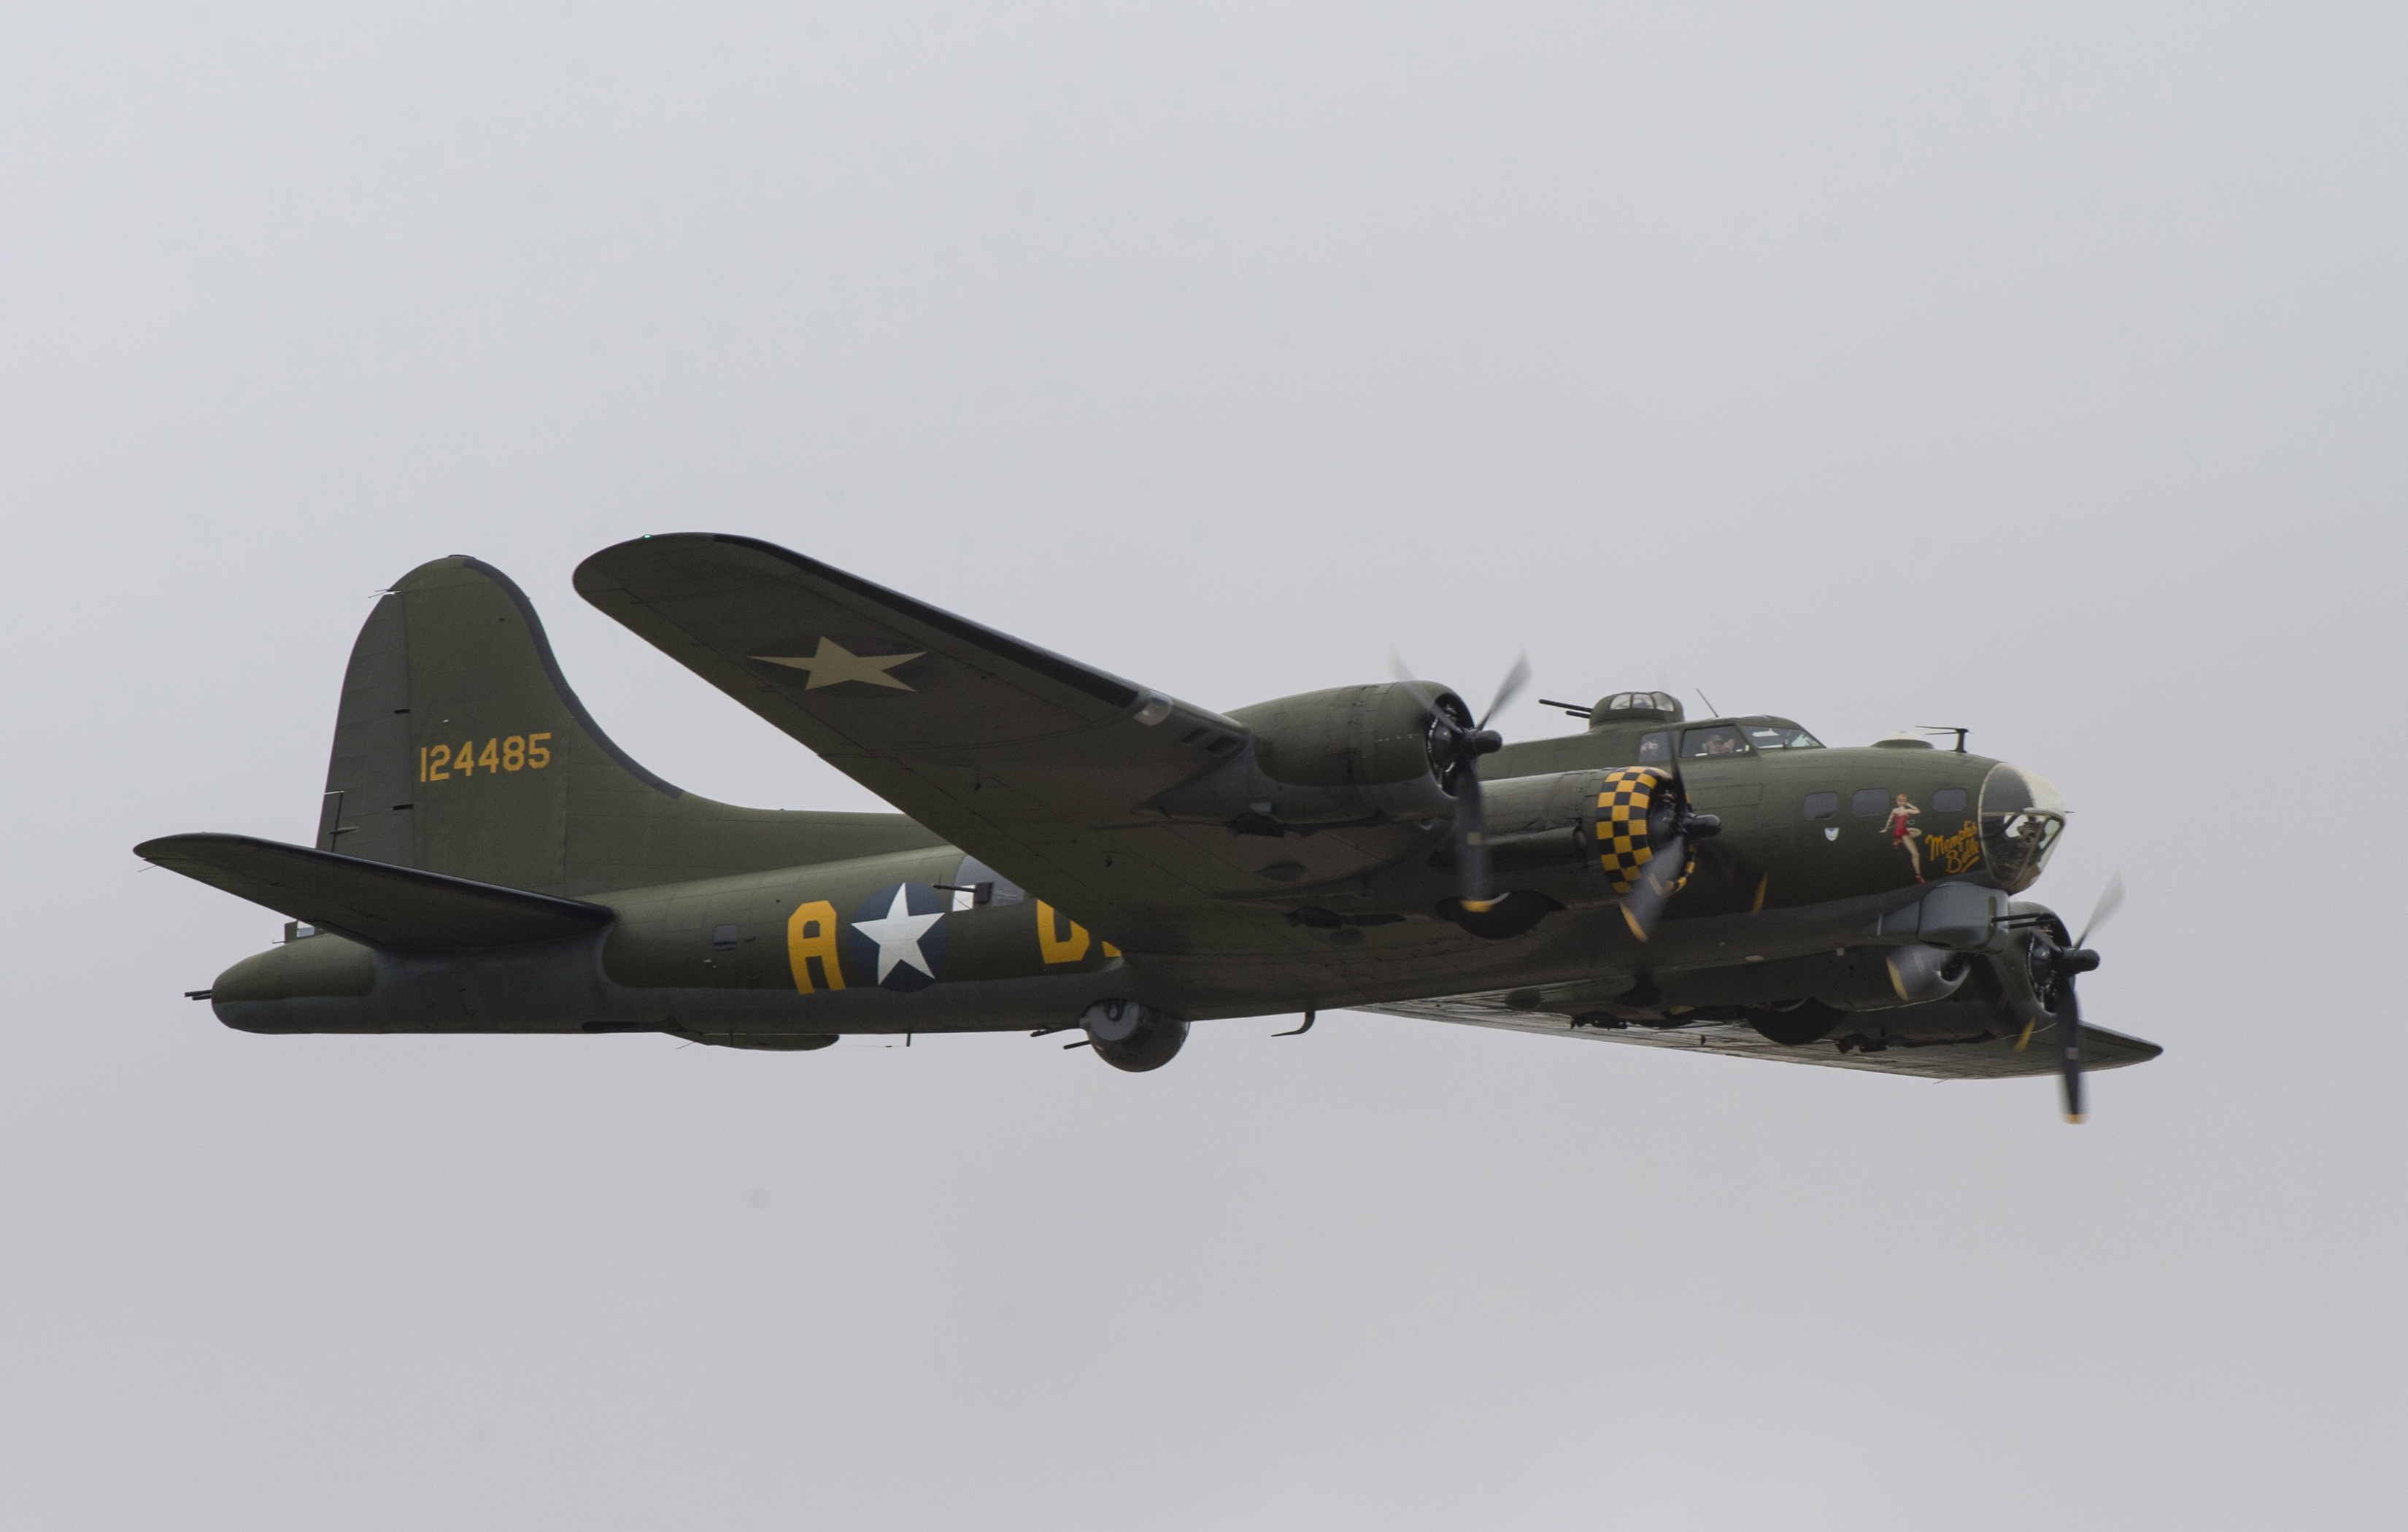 FAIRFORD, United Kingdom – A B-17 aircraft flies past spectators during the 2017 Royal International Air Tattoo (RIAT) located at RAF Fairford, United Kingdom, on July 15, 2017. This year commemorates the U.S. Air Force's 70th Anniversary which was highlighted during RIAT by displaying its lineage and advancements in military aircraft. (U.S. Air Force Photo by Tech. Sgt. Brian Kimball)